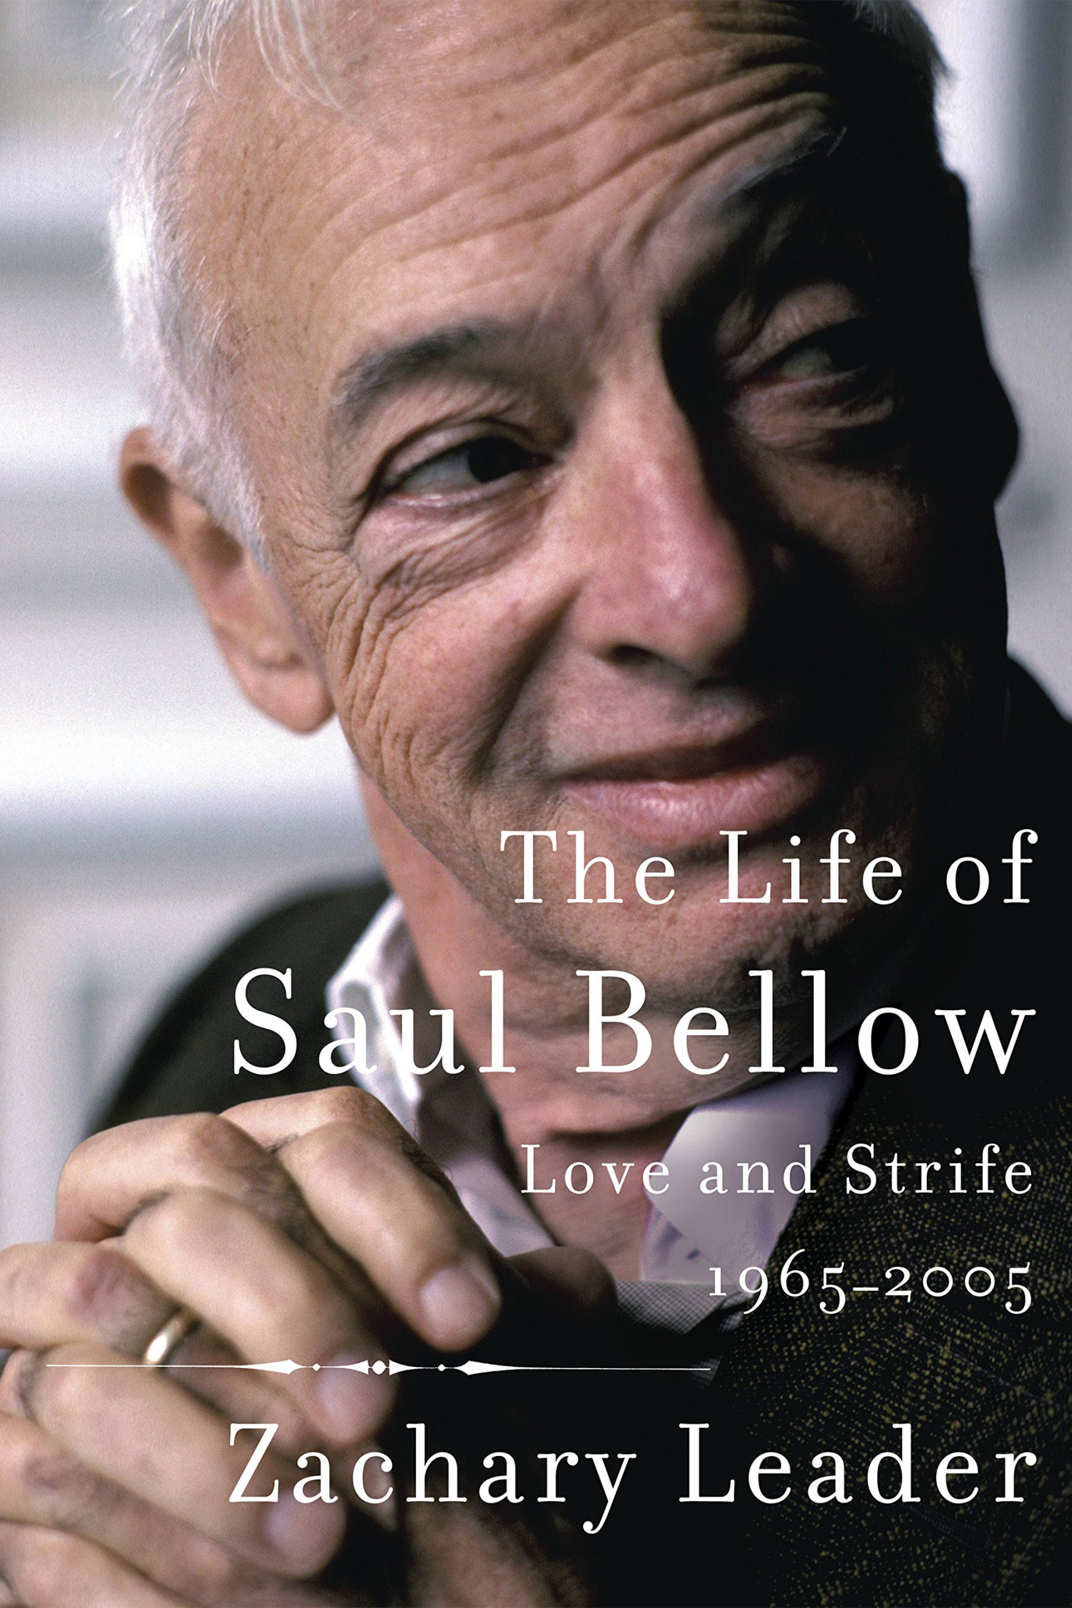 <em>The Life of Saul Bellow: Love and Strife, 1965-2005</em>, by Zachary Leader (Knopf, November 6)